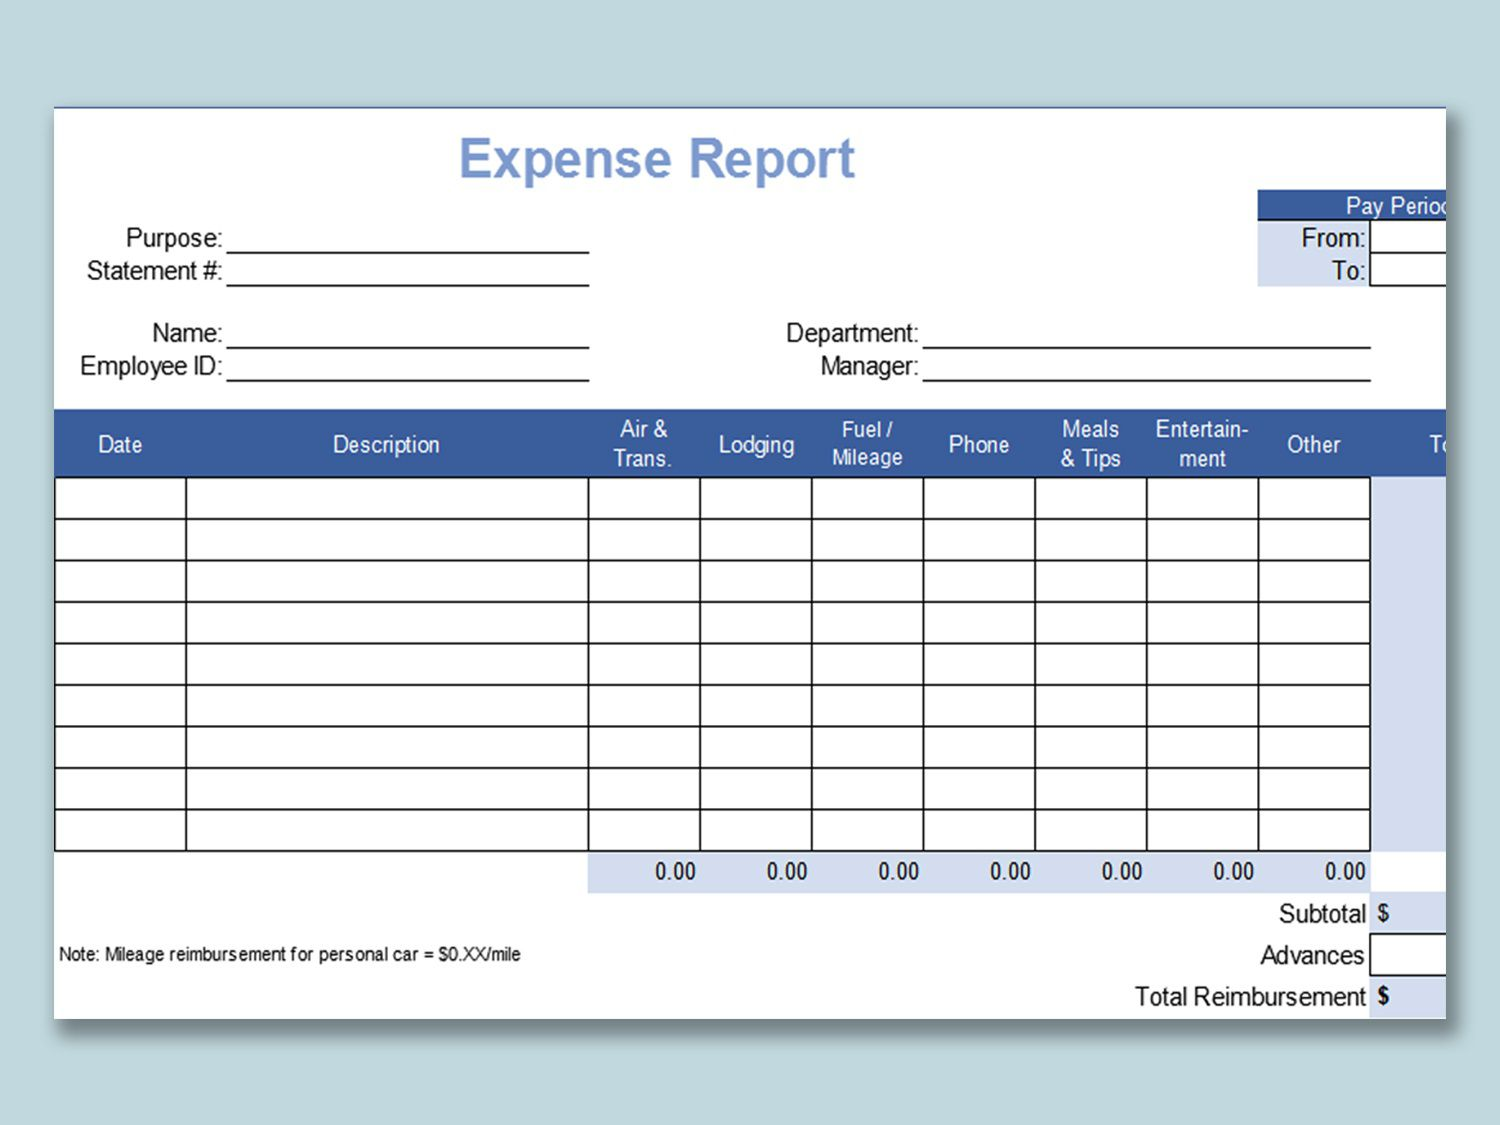 001 Incredible Travel Expense Report Template Inspiration  Google Sheet Free Form PdfFull